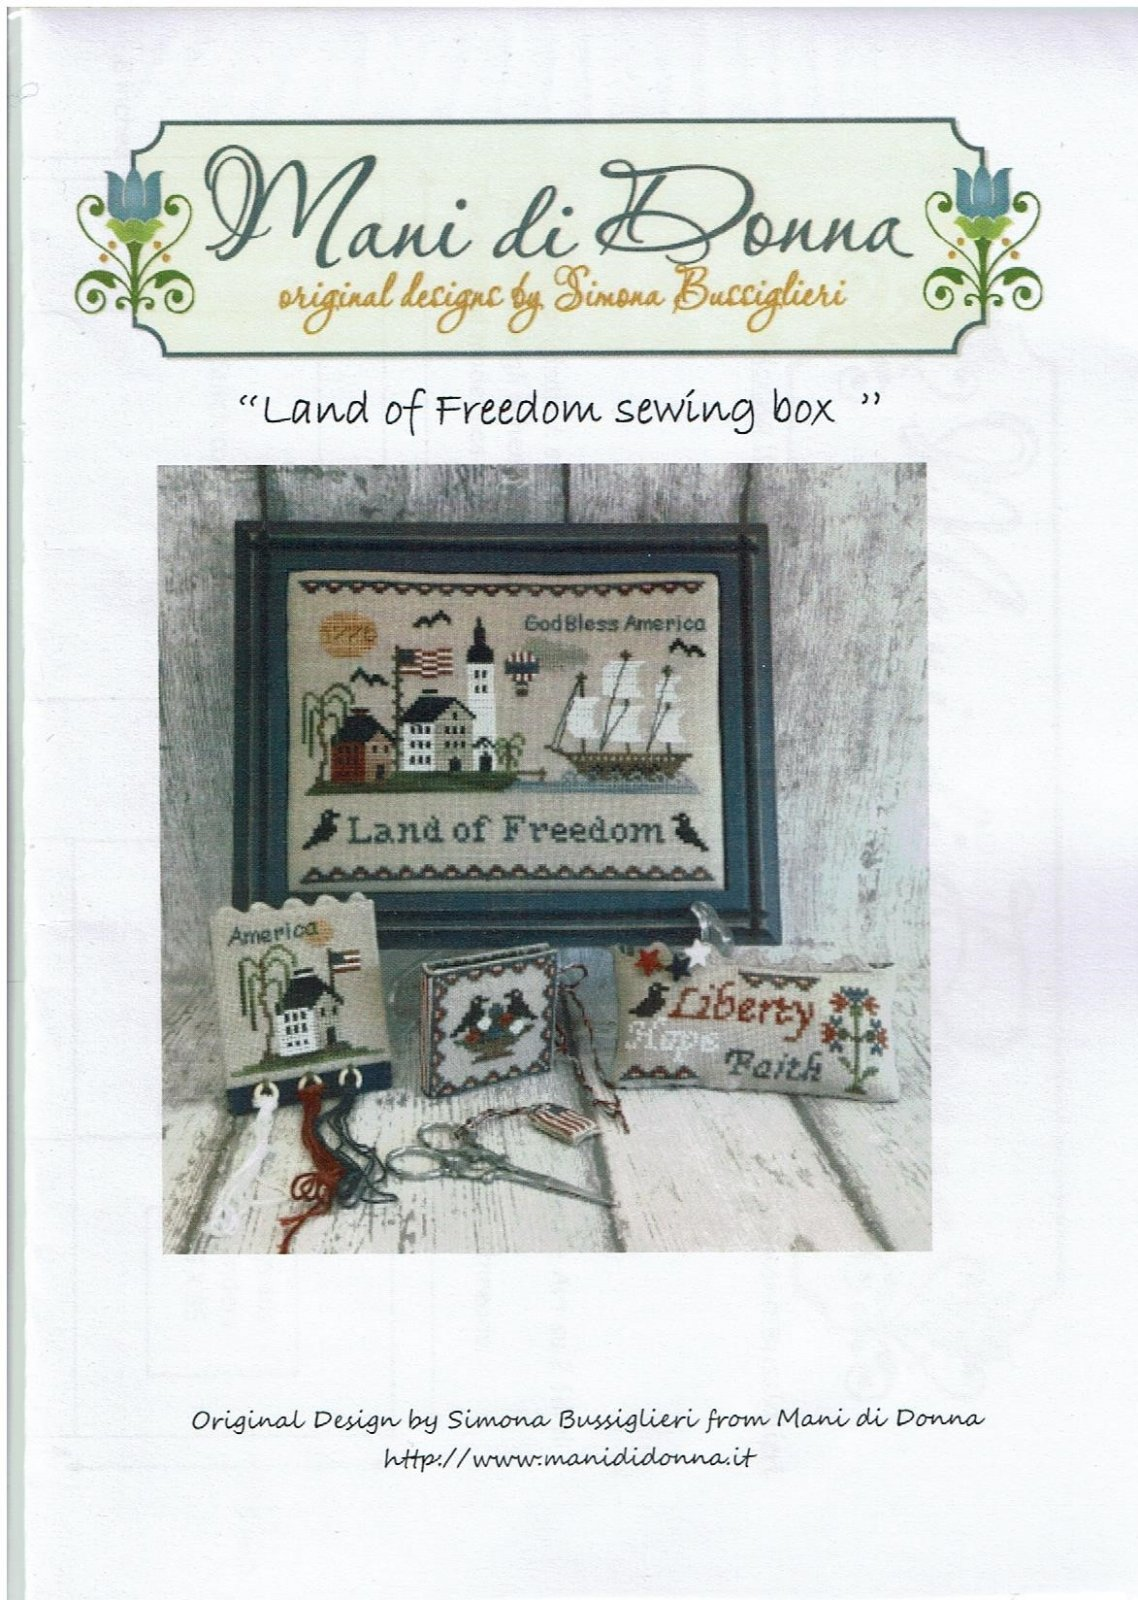 -8- 317 Land of the Freedom Sewing Box by Mani di Donna